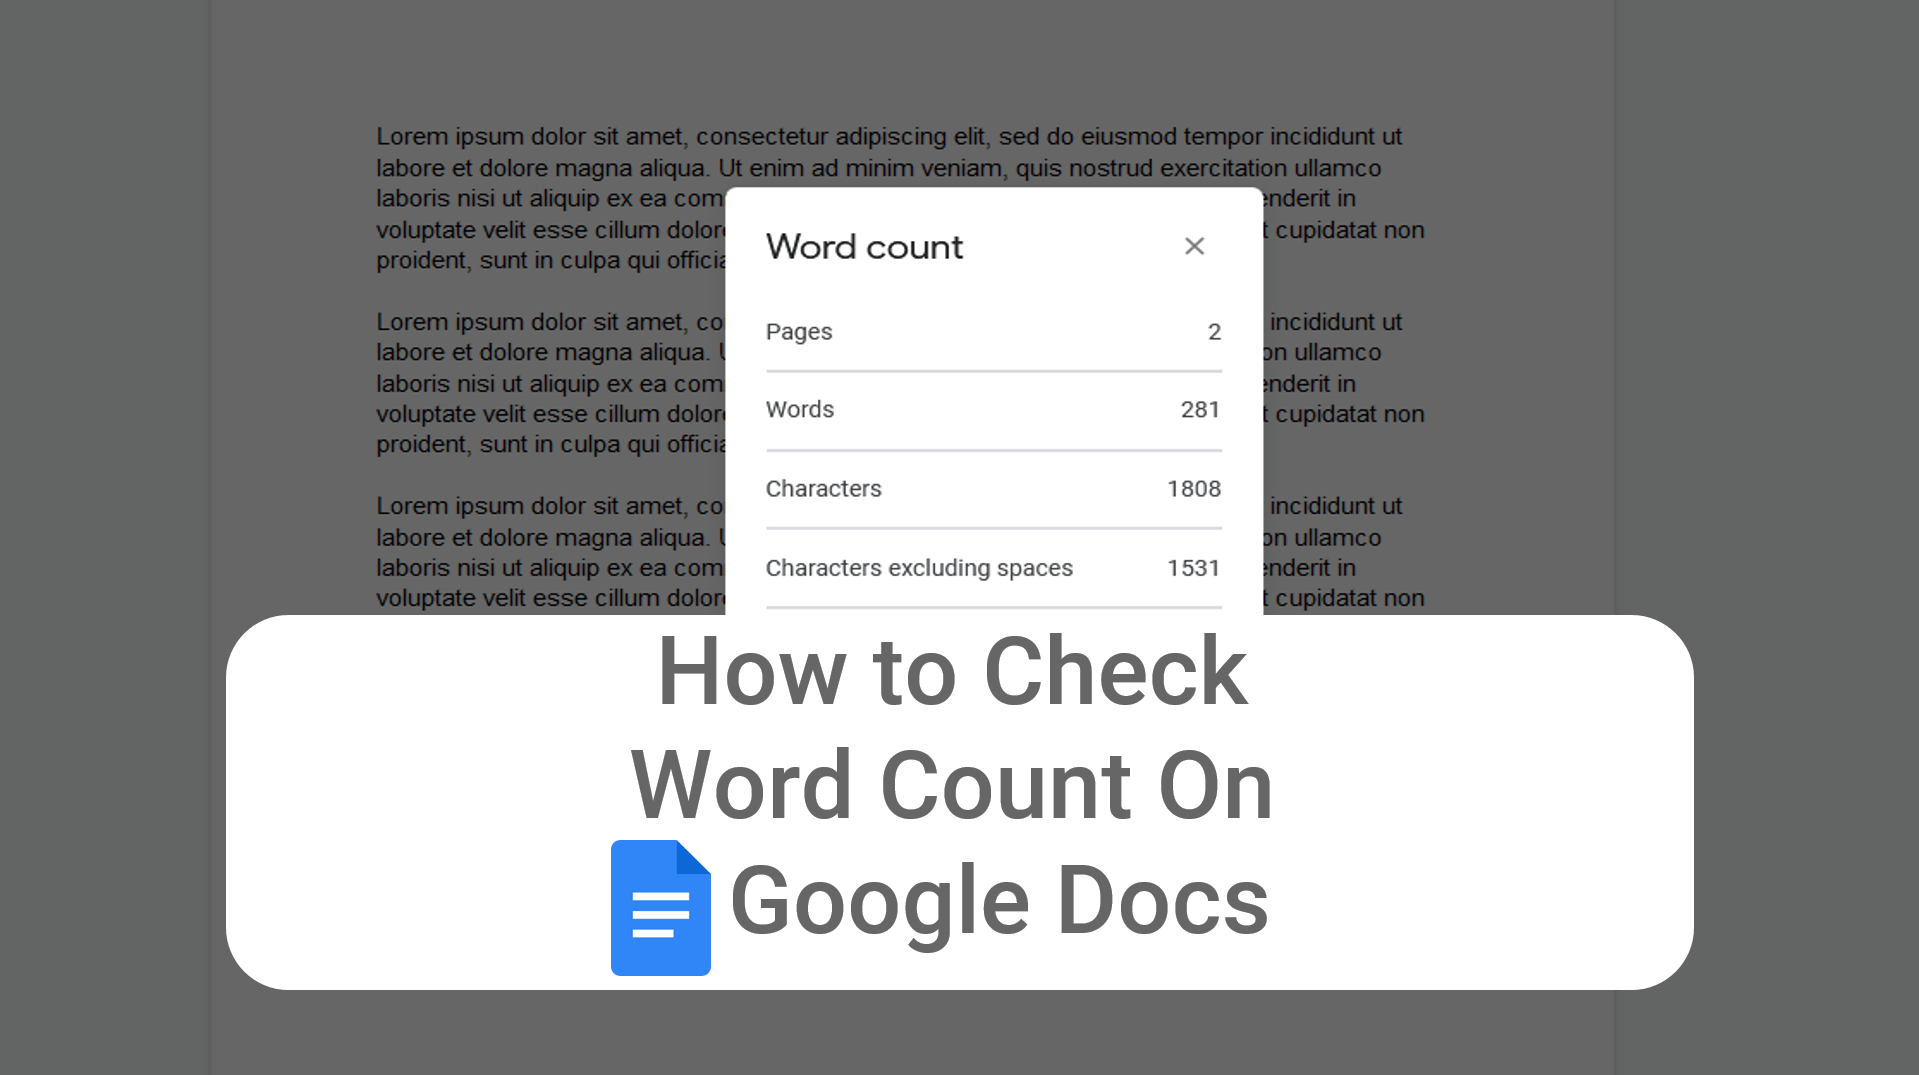 how to check word count on Google docs